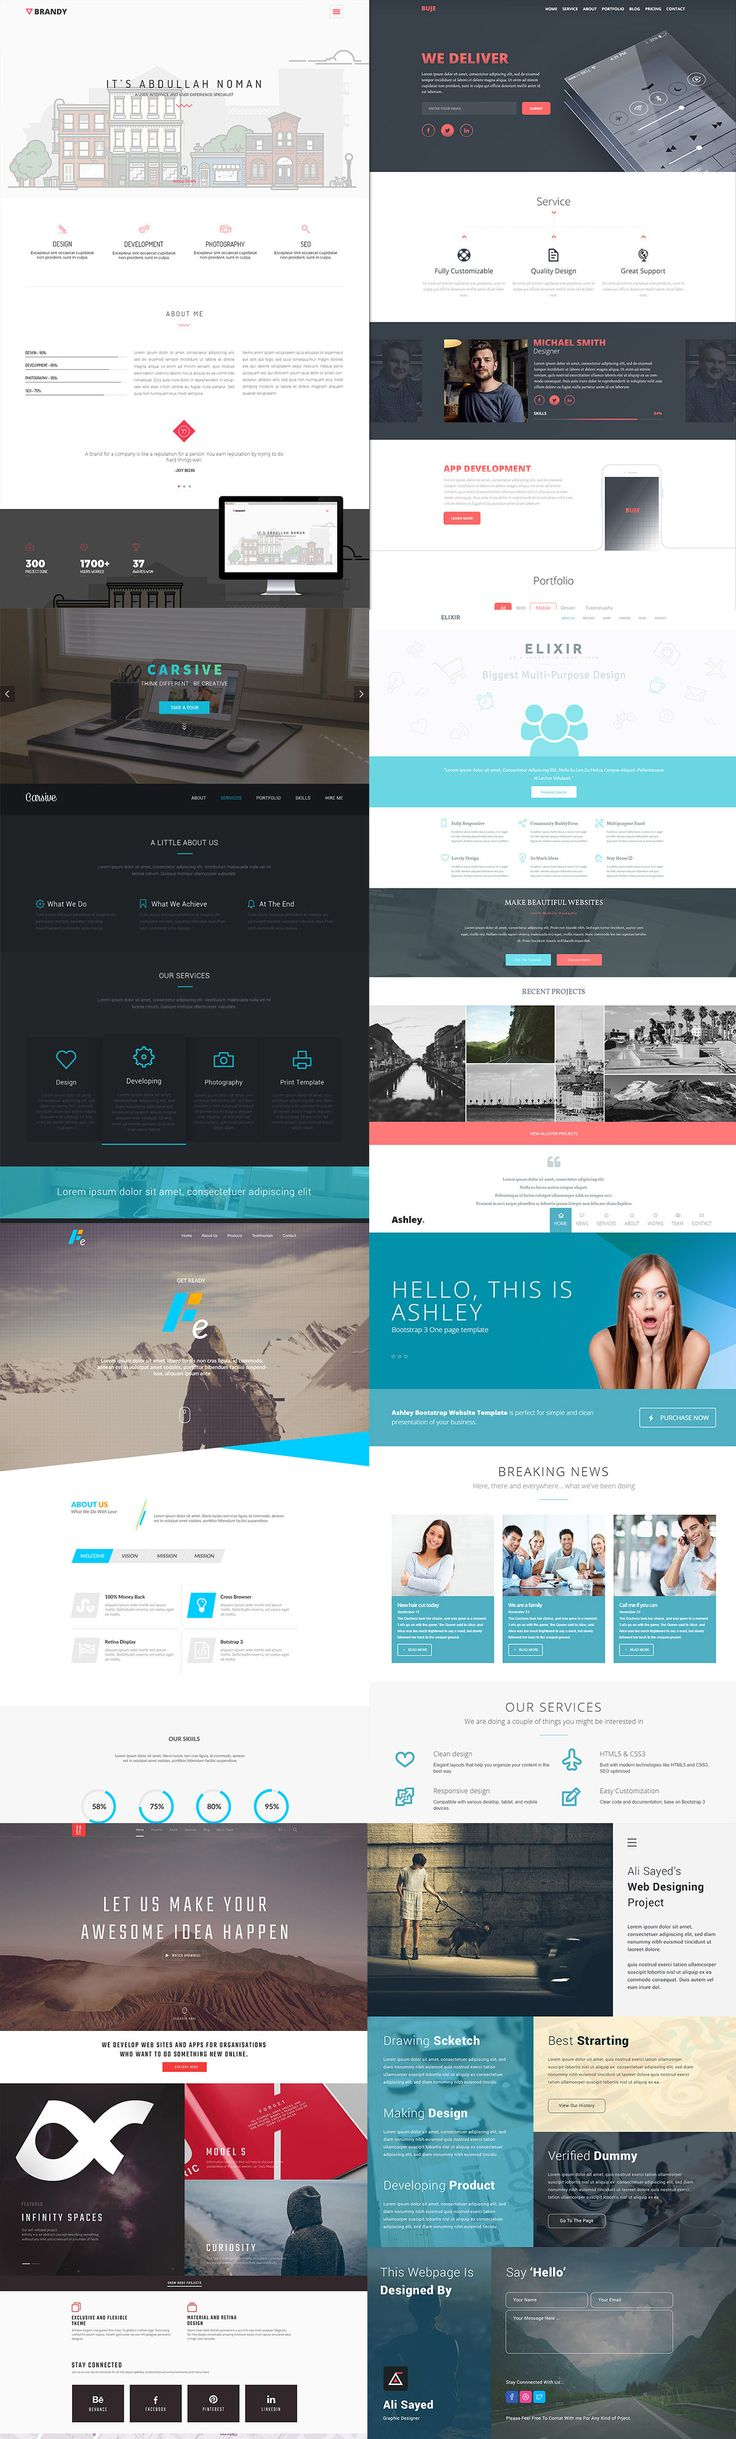 Here are some Free PSD Web Templates with impressive designs that you can freely use in your projects. You can readily code them to HTML to use it for your websites.